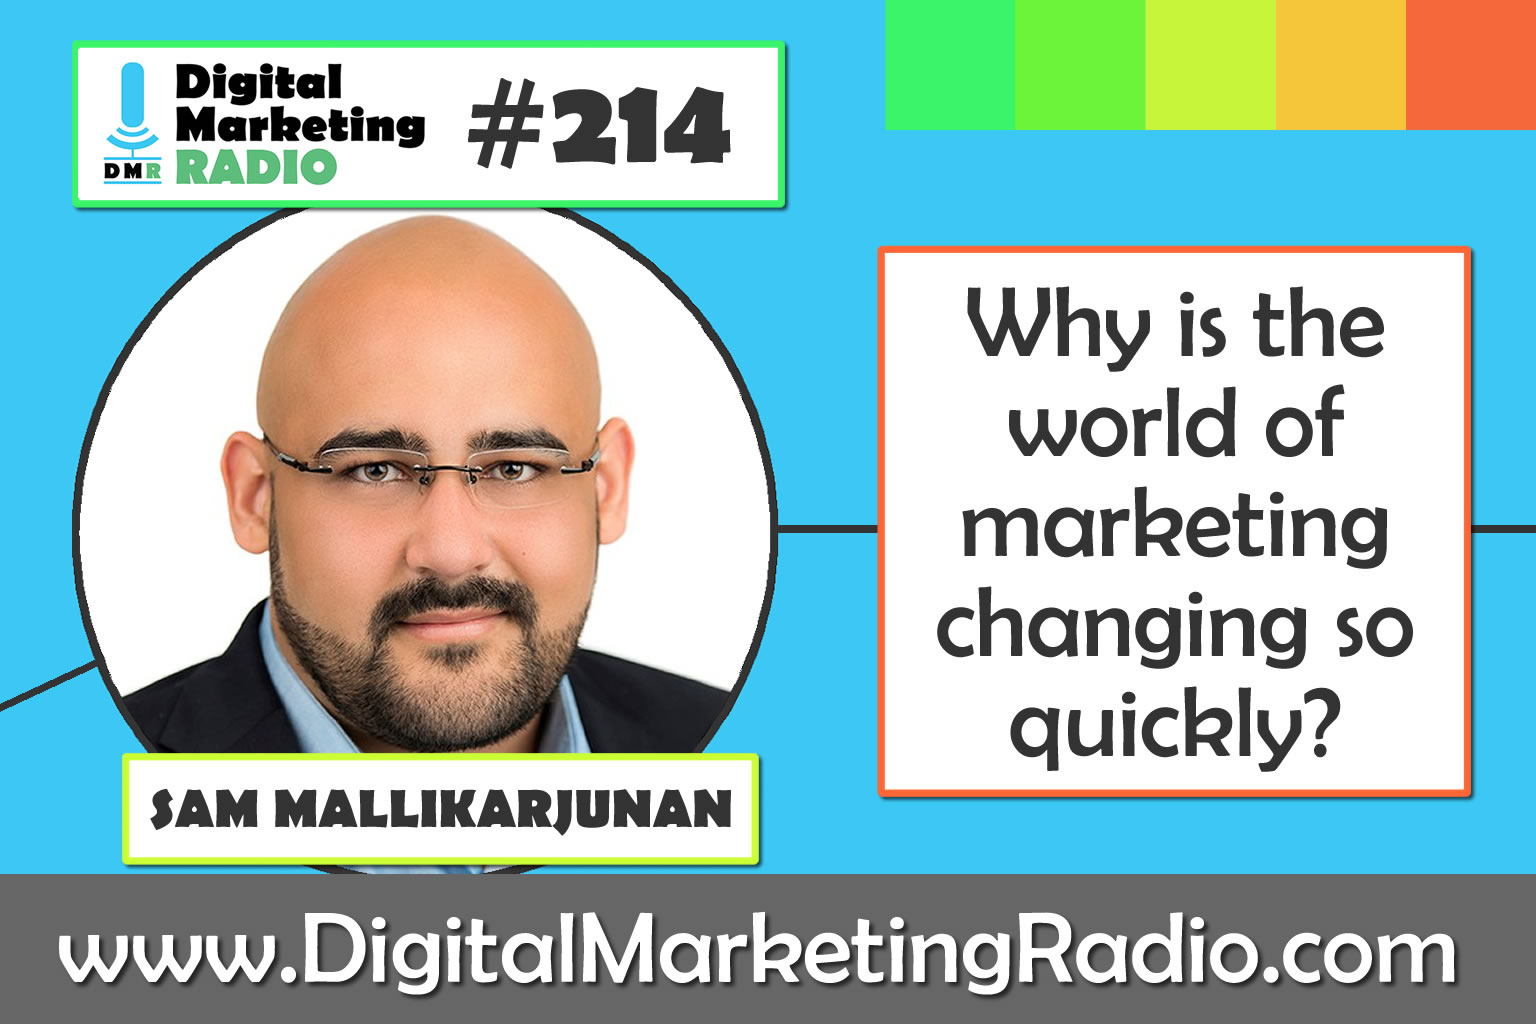 Why is the world of marketing changing so quickly? – SAM MALLIKARJUNAN